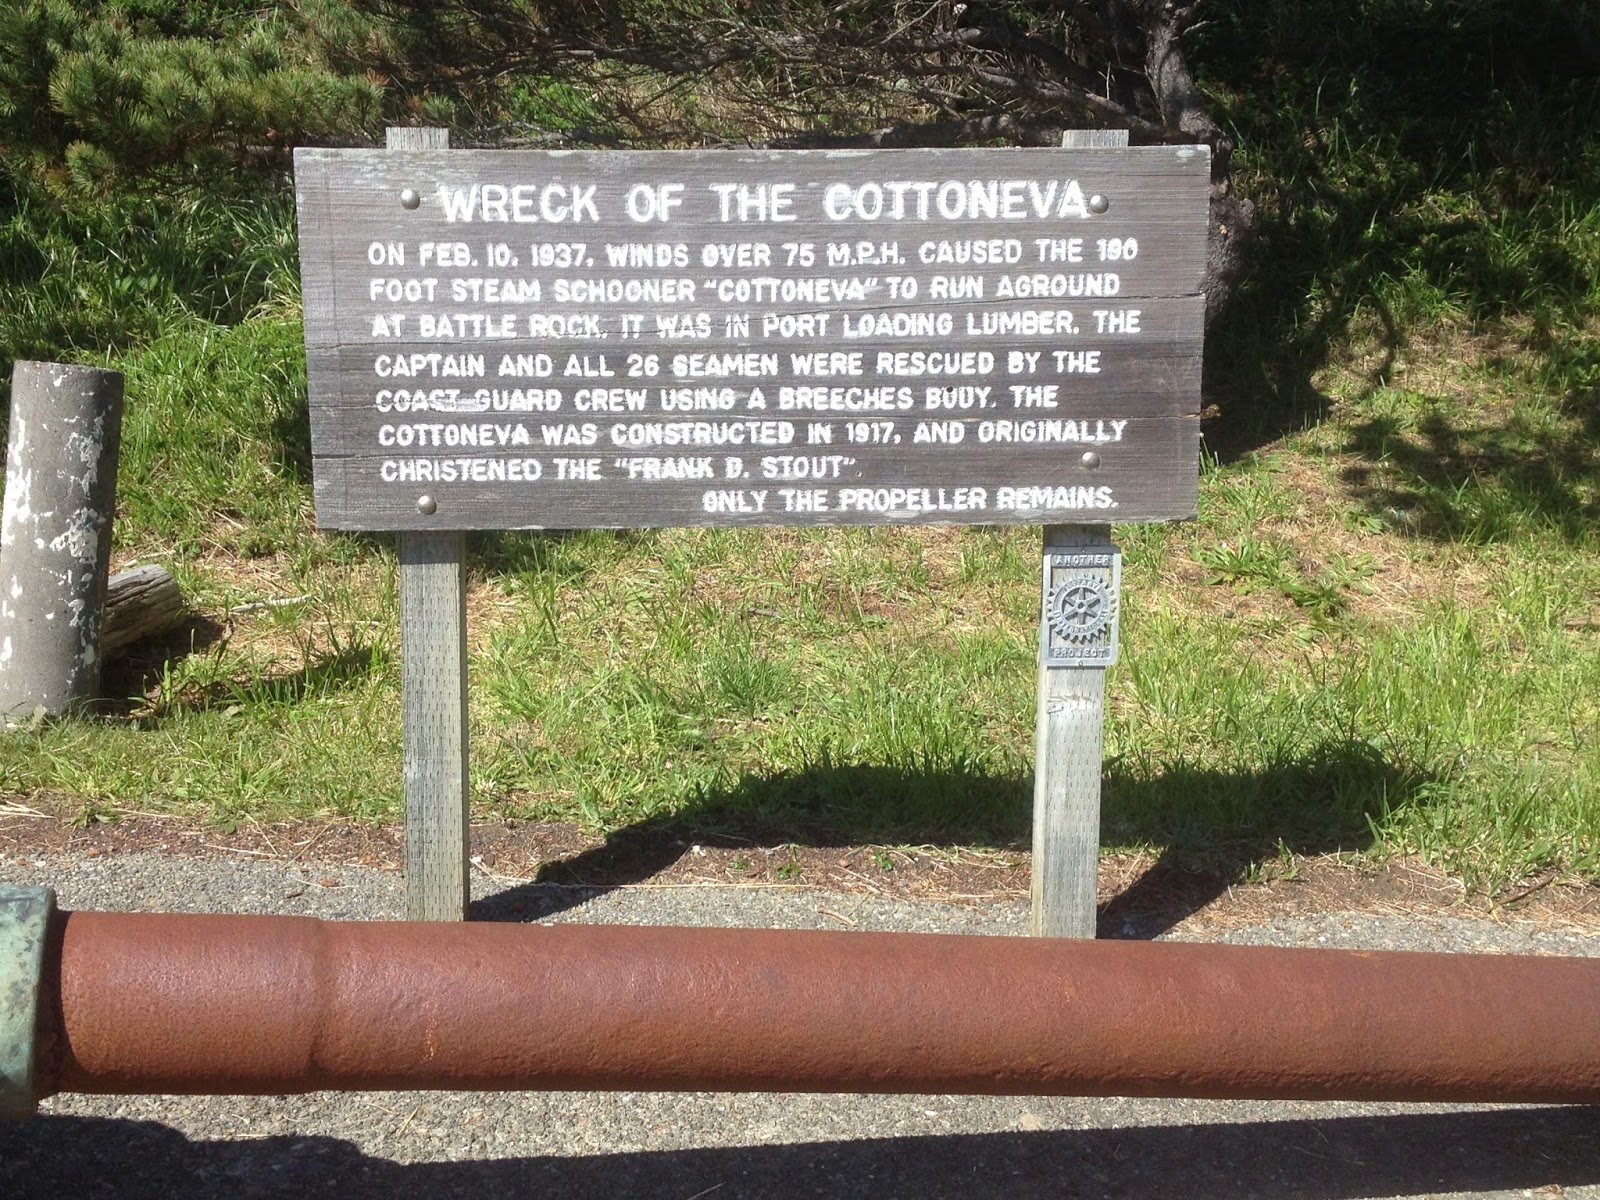 Sign Board Tells of the wreck of the schooner Cotteneva